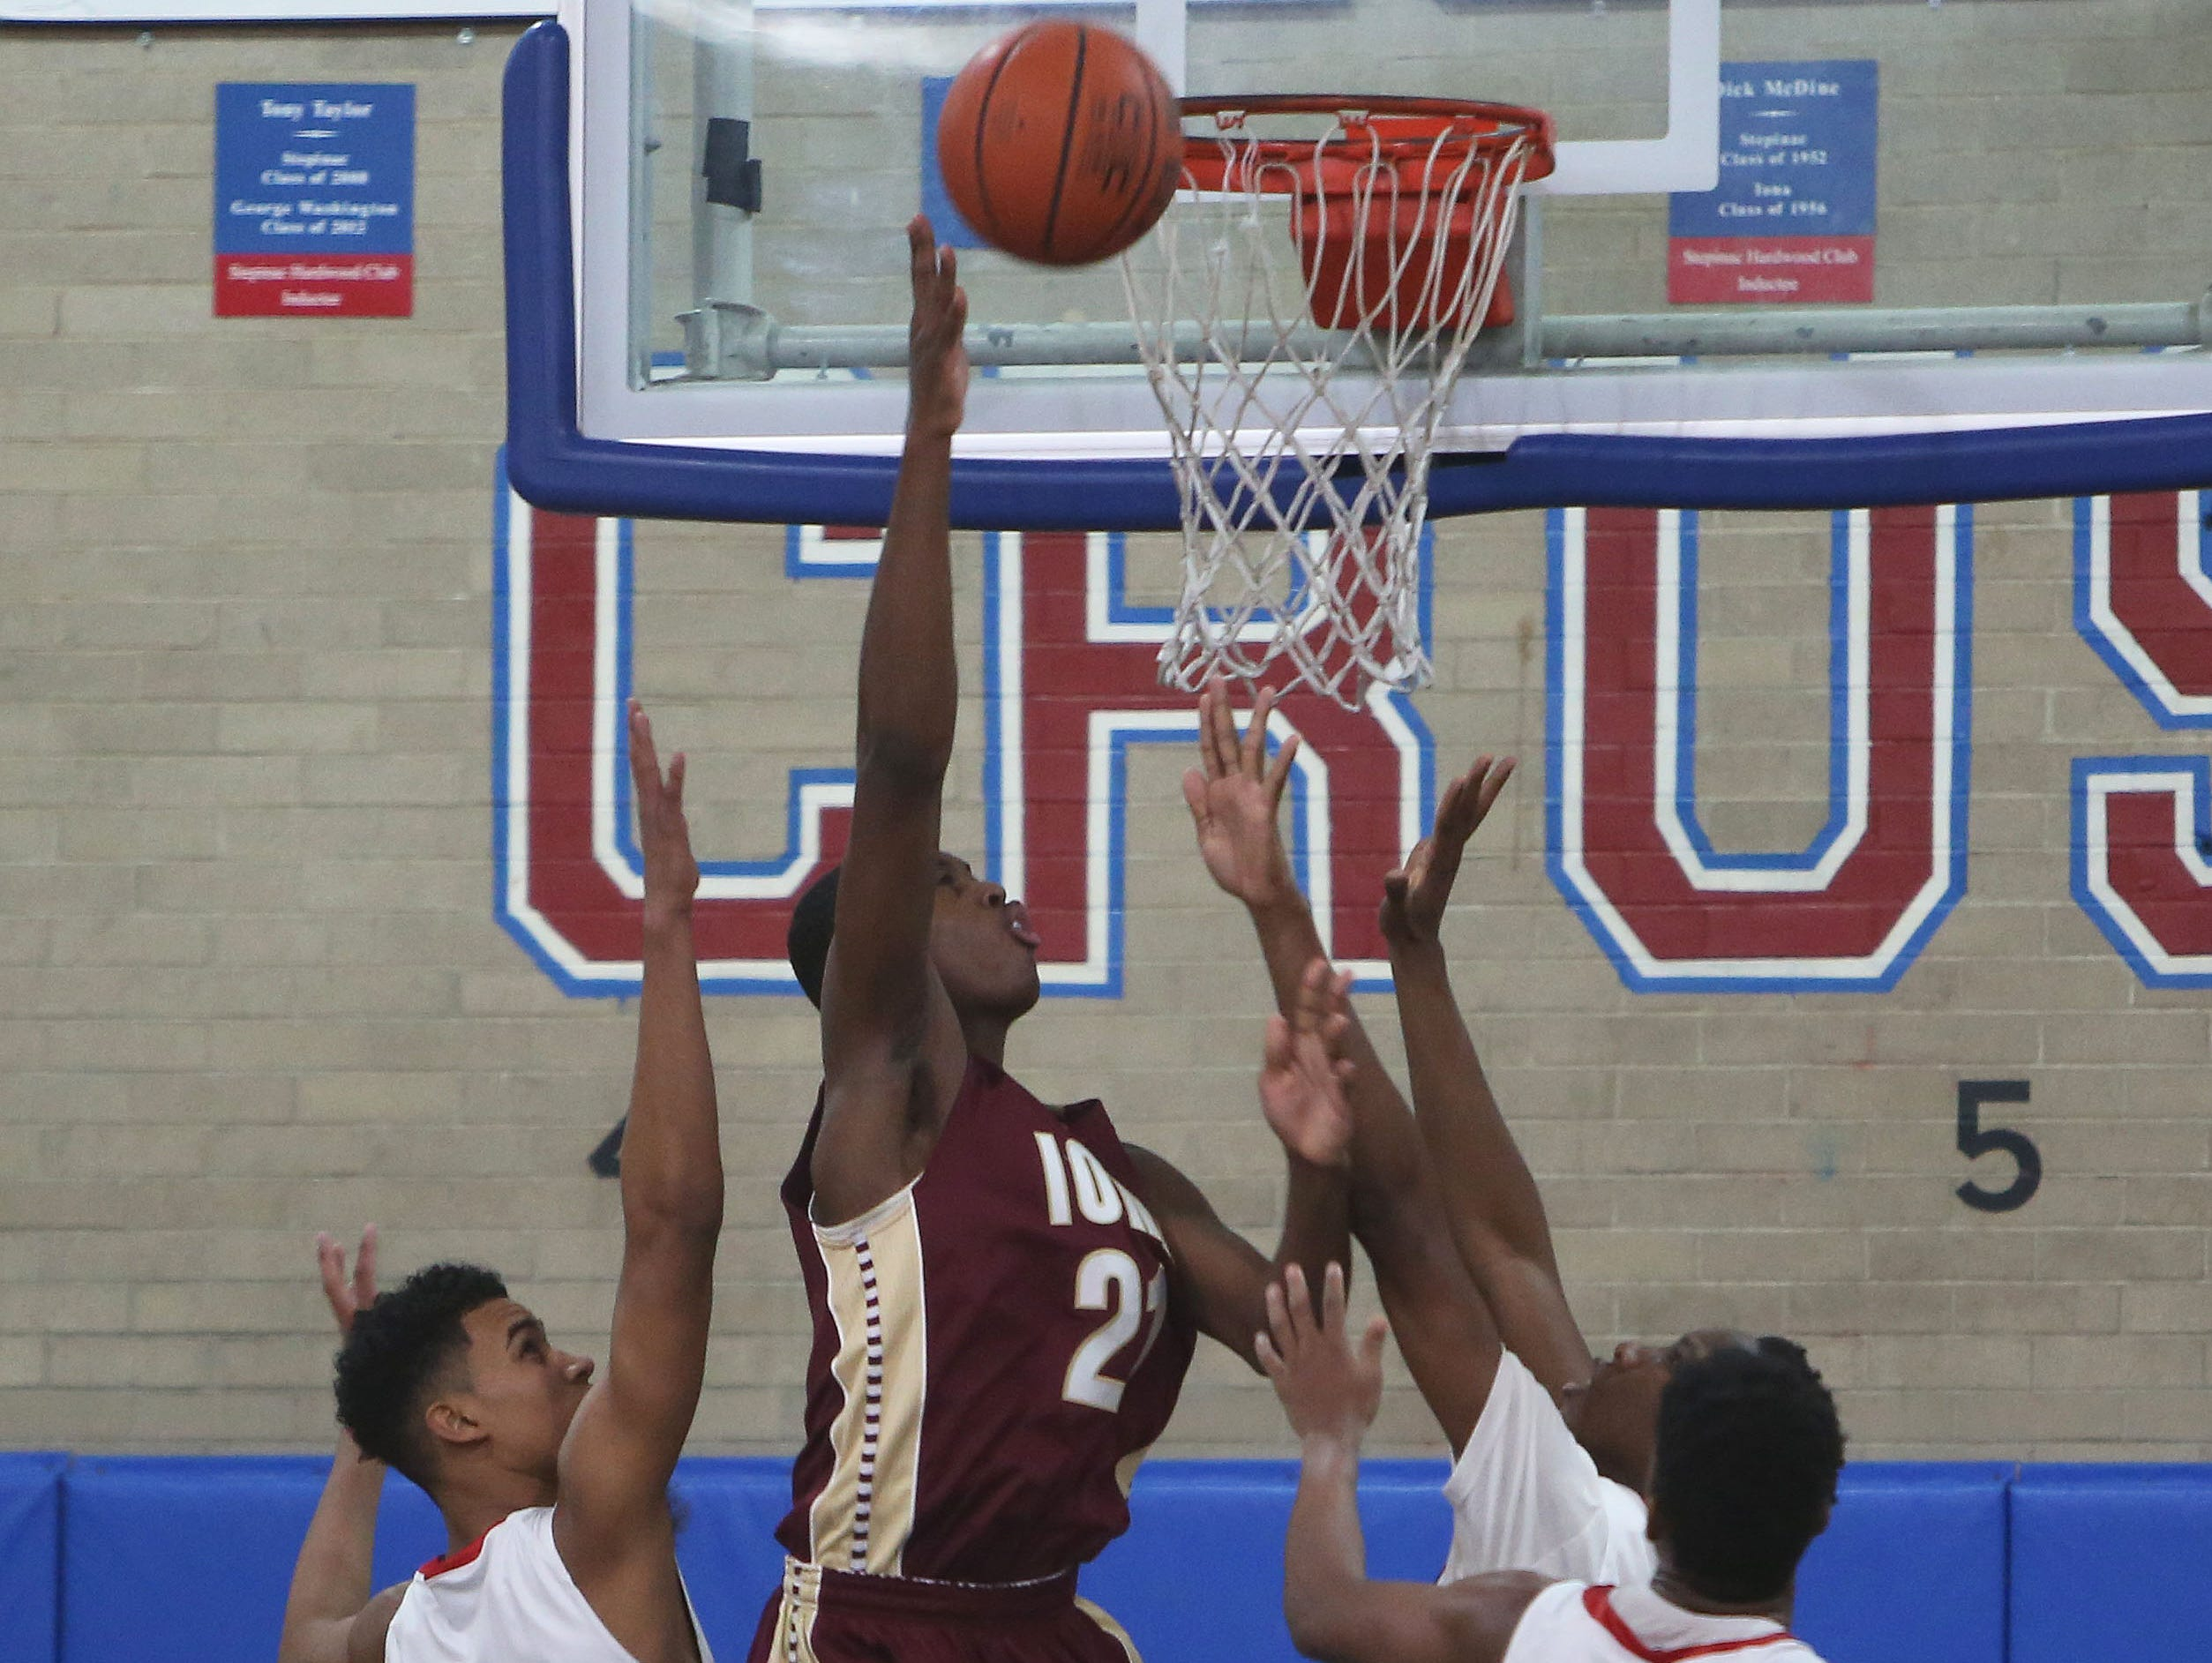 Iona's Josh Alexander (21) tries to go up for a shot in front of Stepinac's Jordan Tucker (5) and Jorden Means (0) during boys basketball action at Archbishop Stepinac High School in White Plains Jan. 8, 2016.